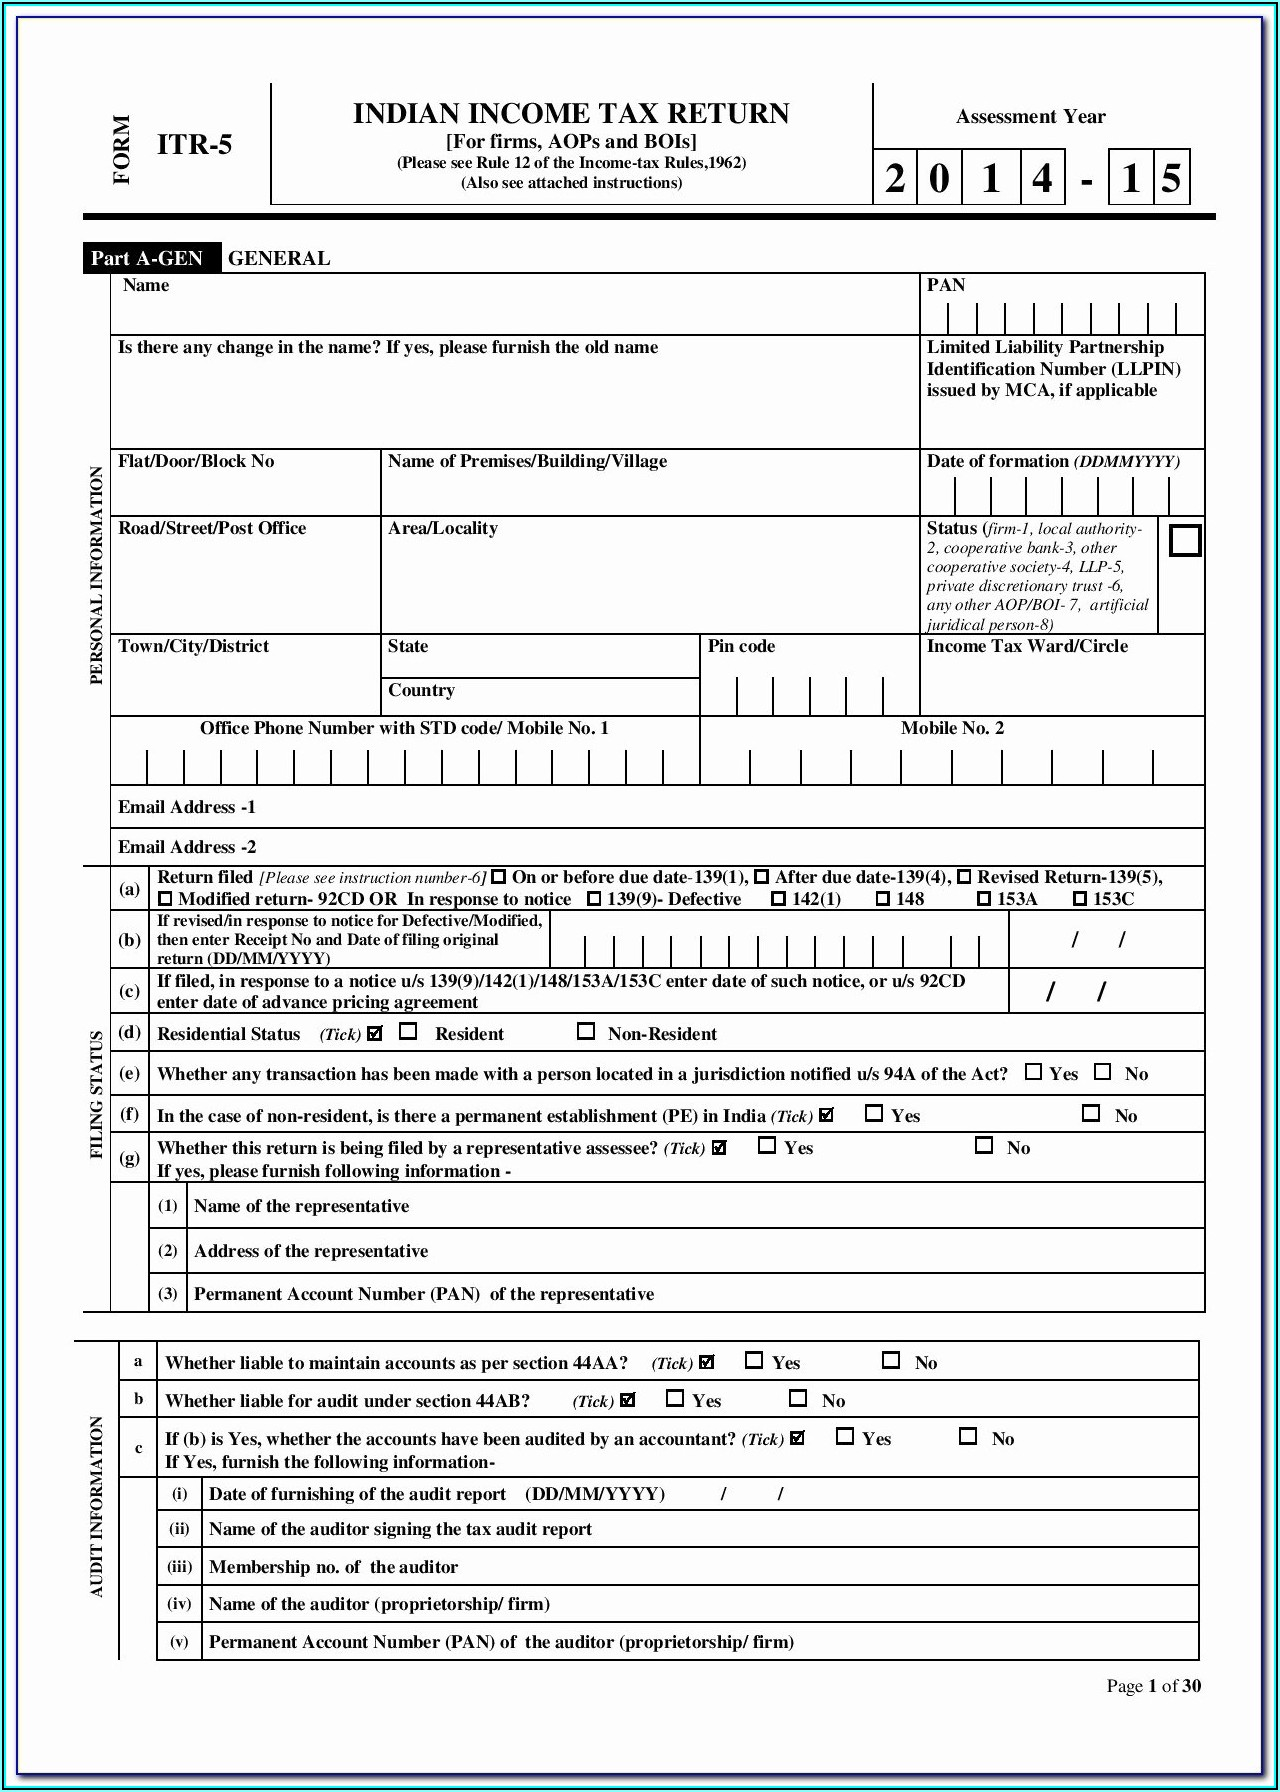 Ohio State Tax Forms 1040ez